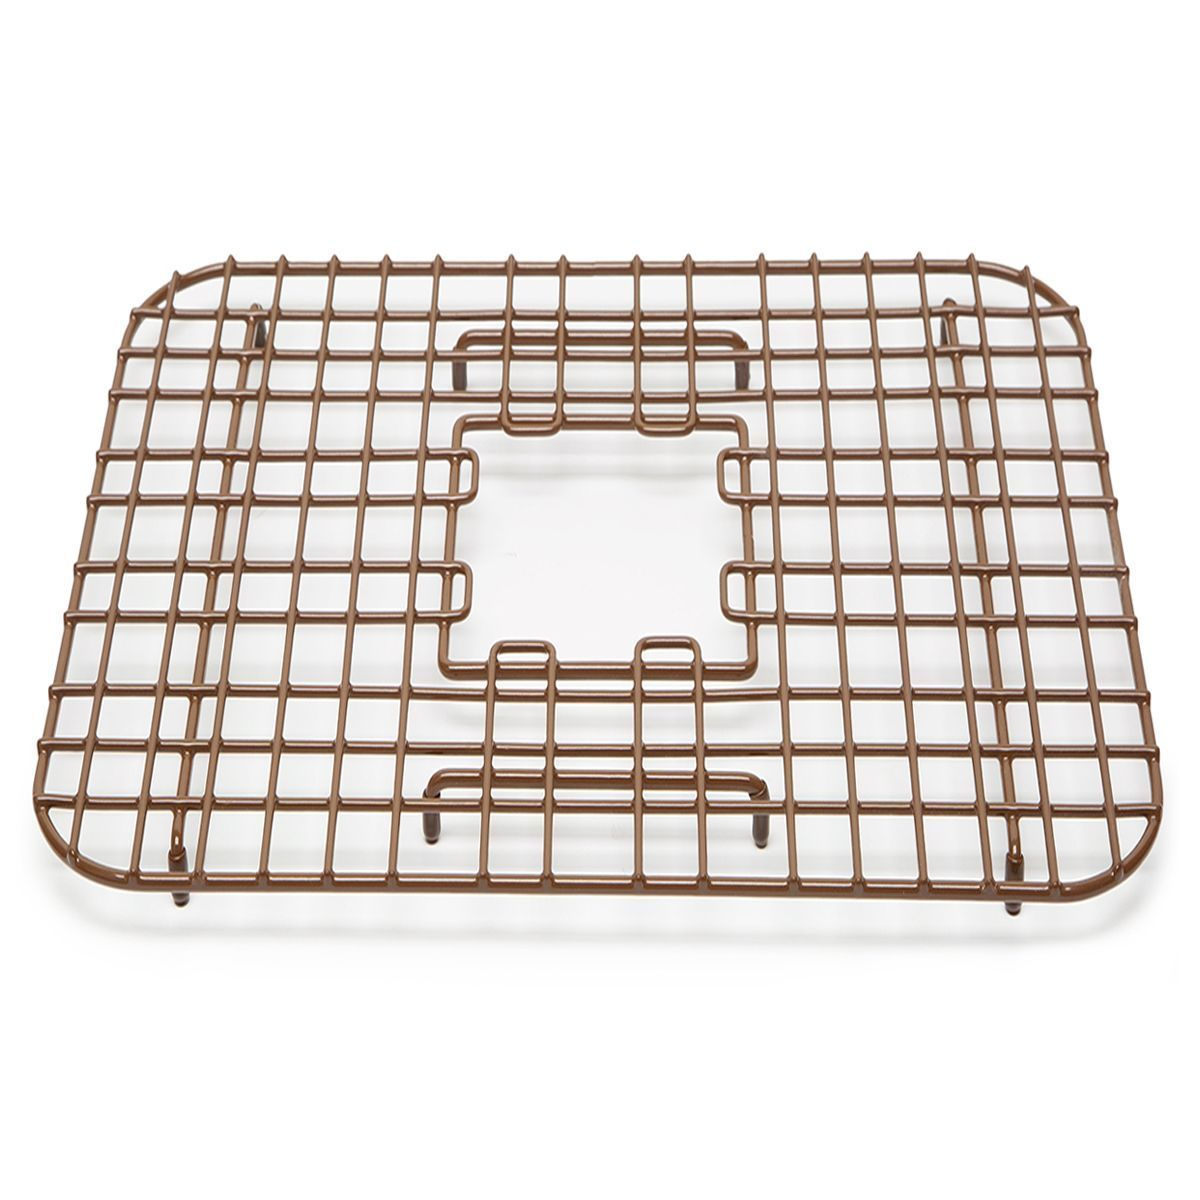 Accessories for Copper Kitchen Sinks by Sinkology